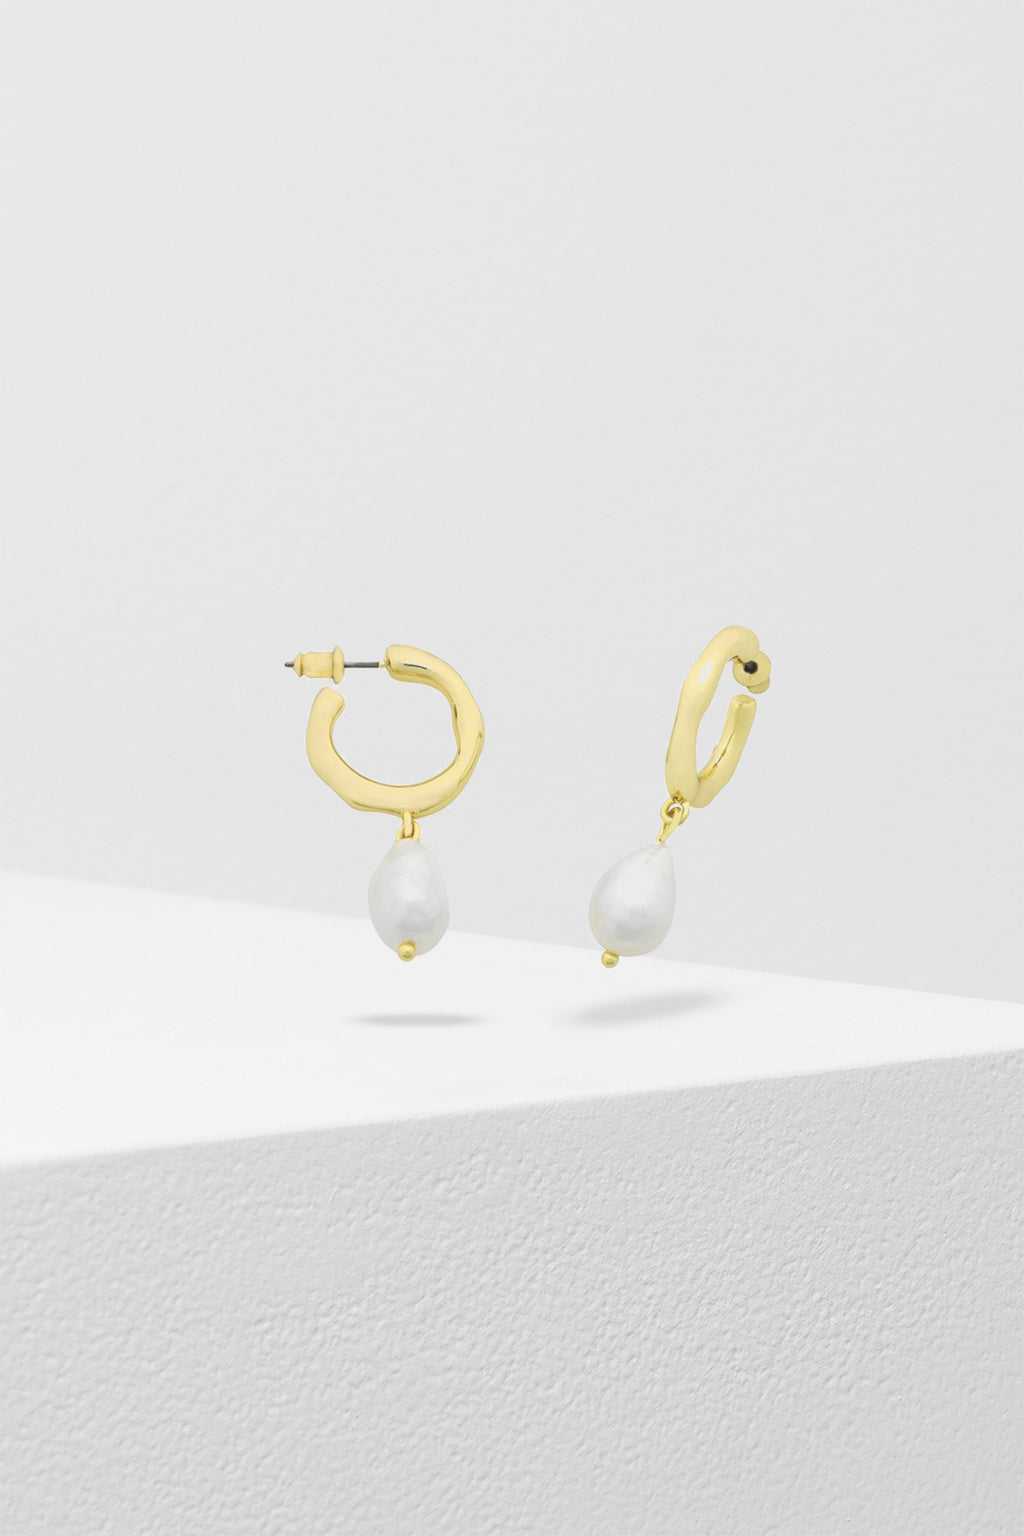 Liberte-Florence Earring Gold-Mott and Mulberry